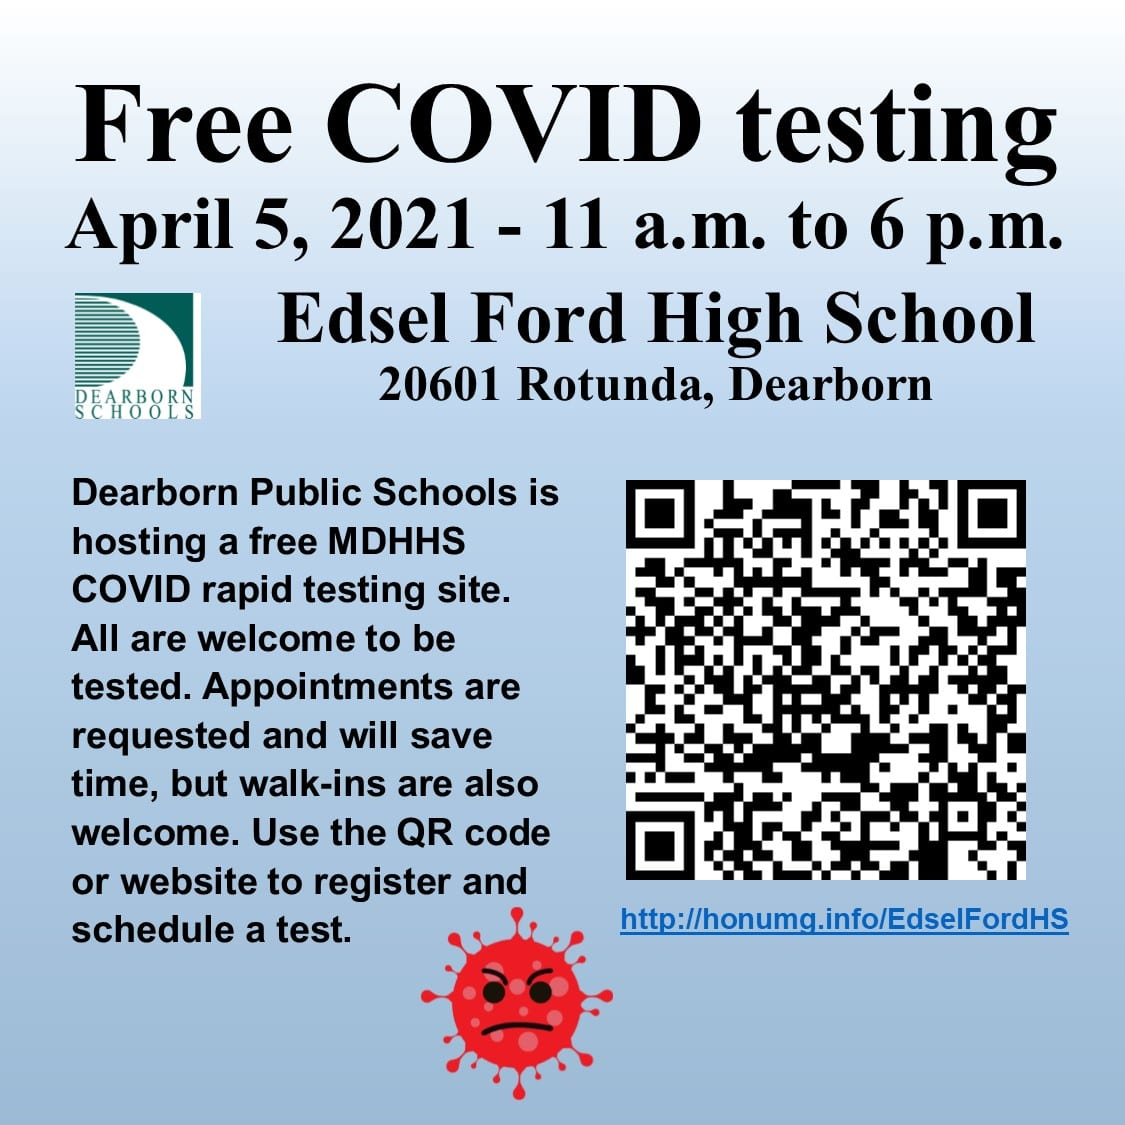 Free COVID testing. April 5, 2021 - 11 a.m. to 6 p.m., Edsel Ford High School, 20601 Rotunda, Dearborn. Dearborn Public Schools is hosting a free MDHHS COVID rapid testing site. All are welcome to be tested. Appointments are requested and will save time, but walk-ins are also welcome. Use the QR code or website to register and schedule a test. http://honumg.info/EdselFordHS